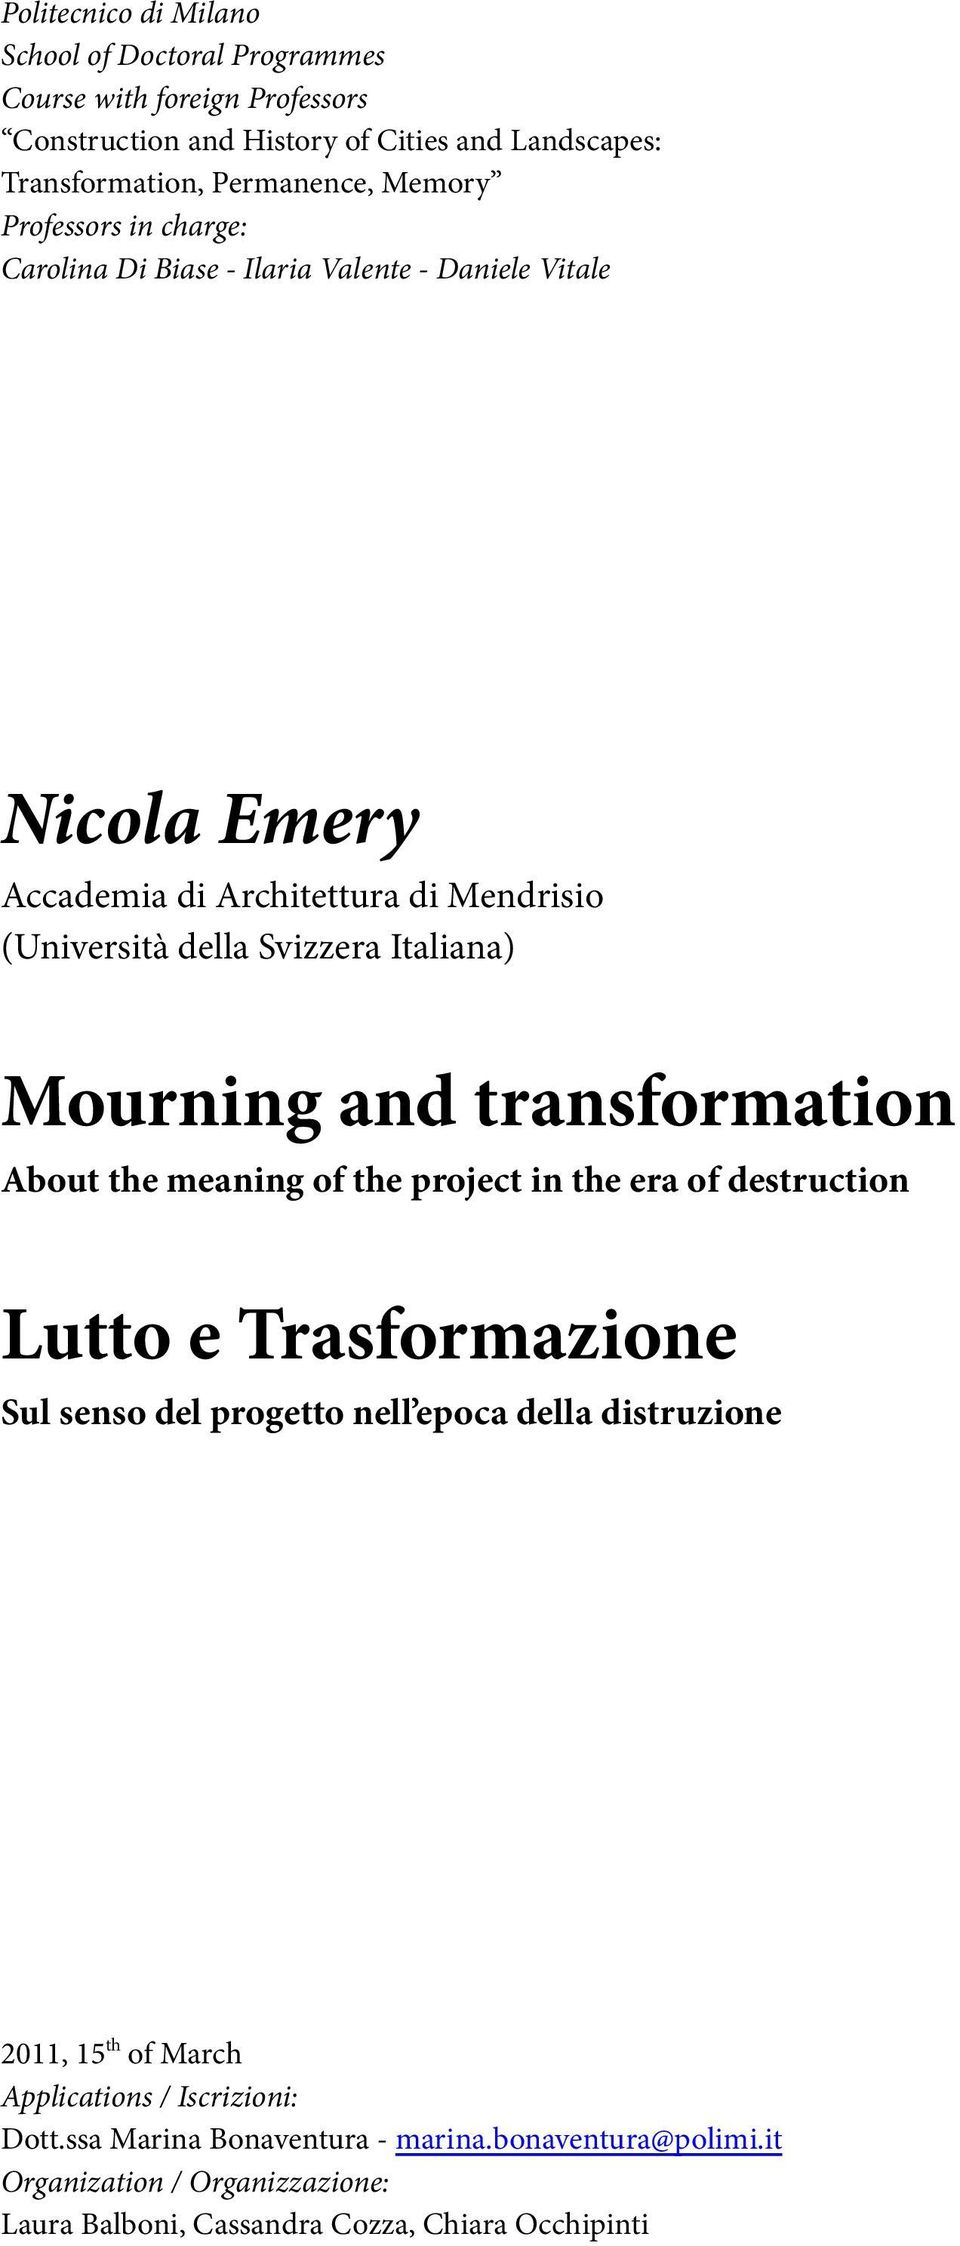 Mourning and transformation About the meaning of the project in the era of destruction Lutto e Trasformazione Sul senso del progetto nell epoca della distruzione 2011, 15